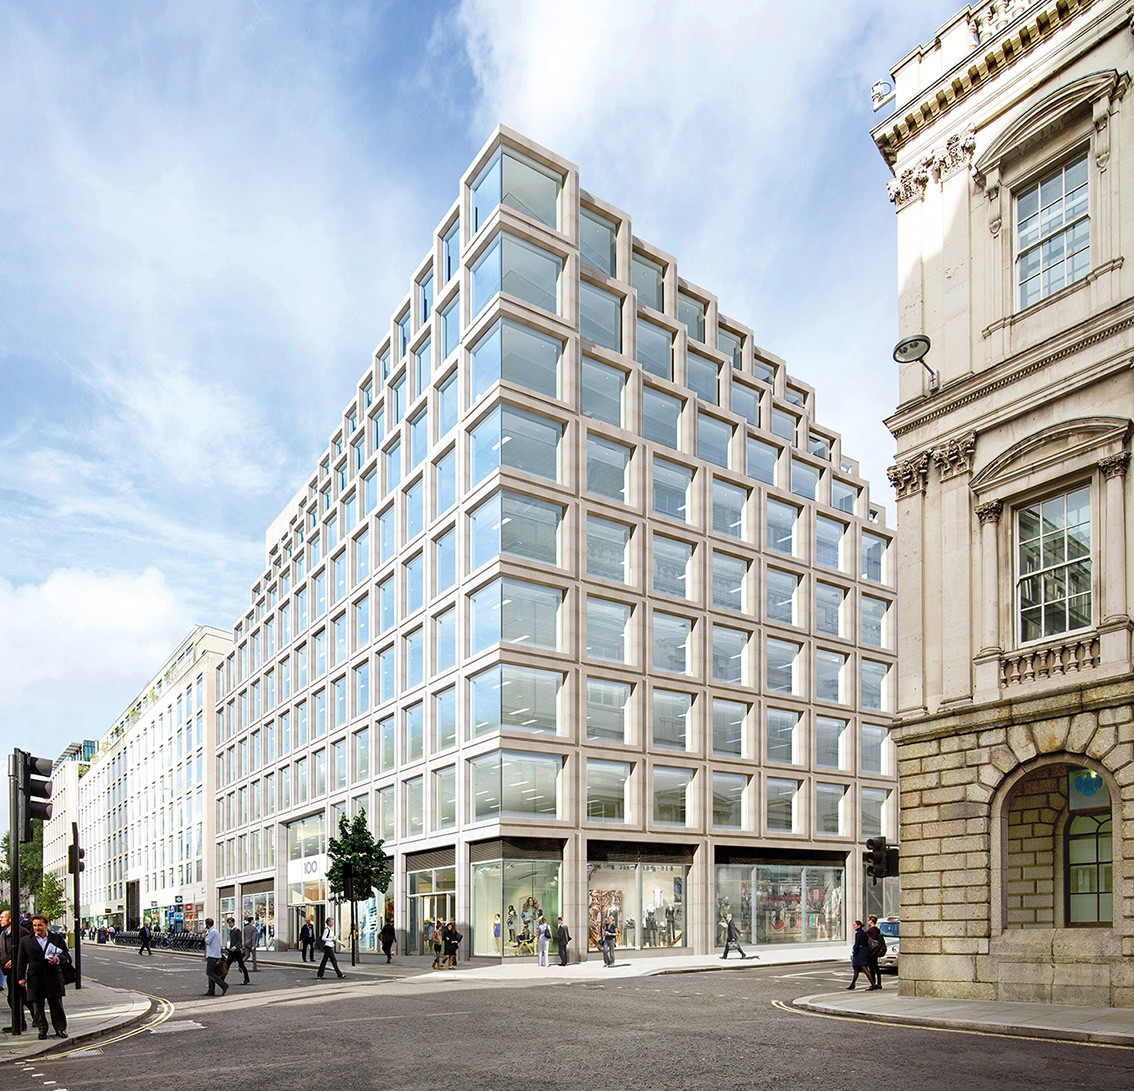 Uk S In Colorado: 100 Cheapside London Office Building